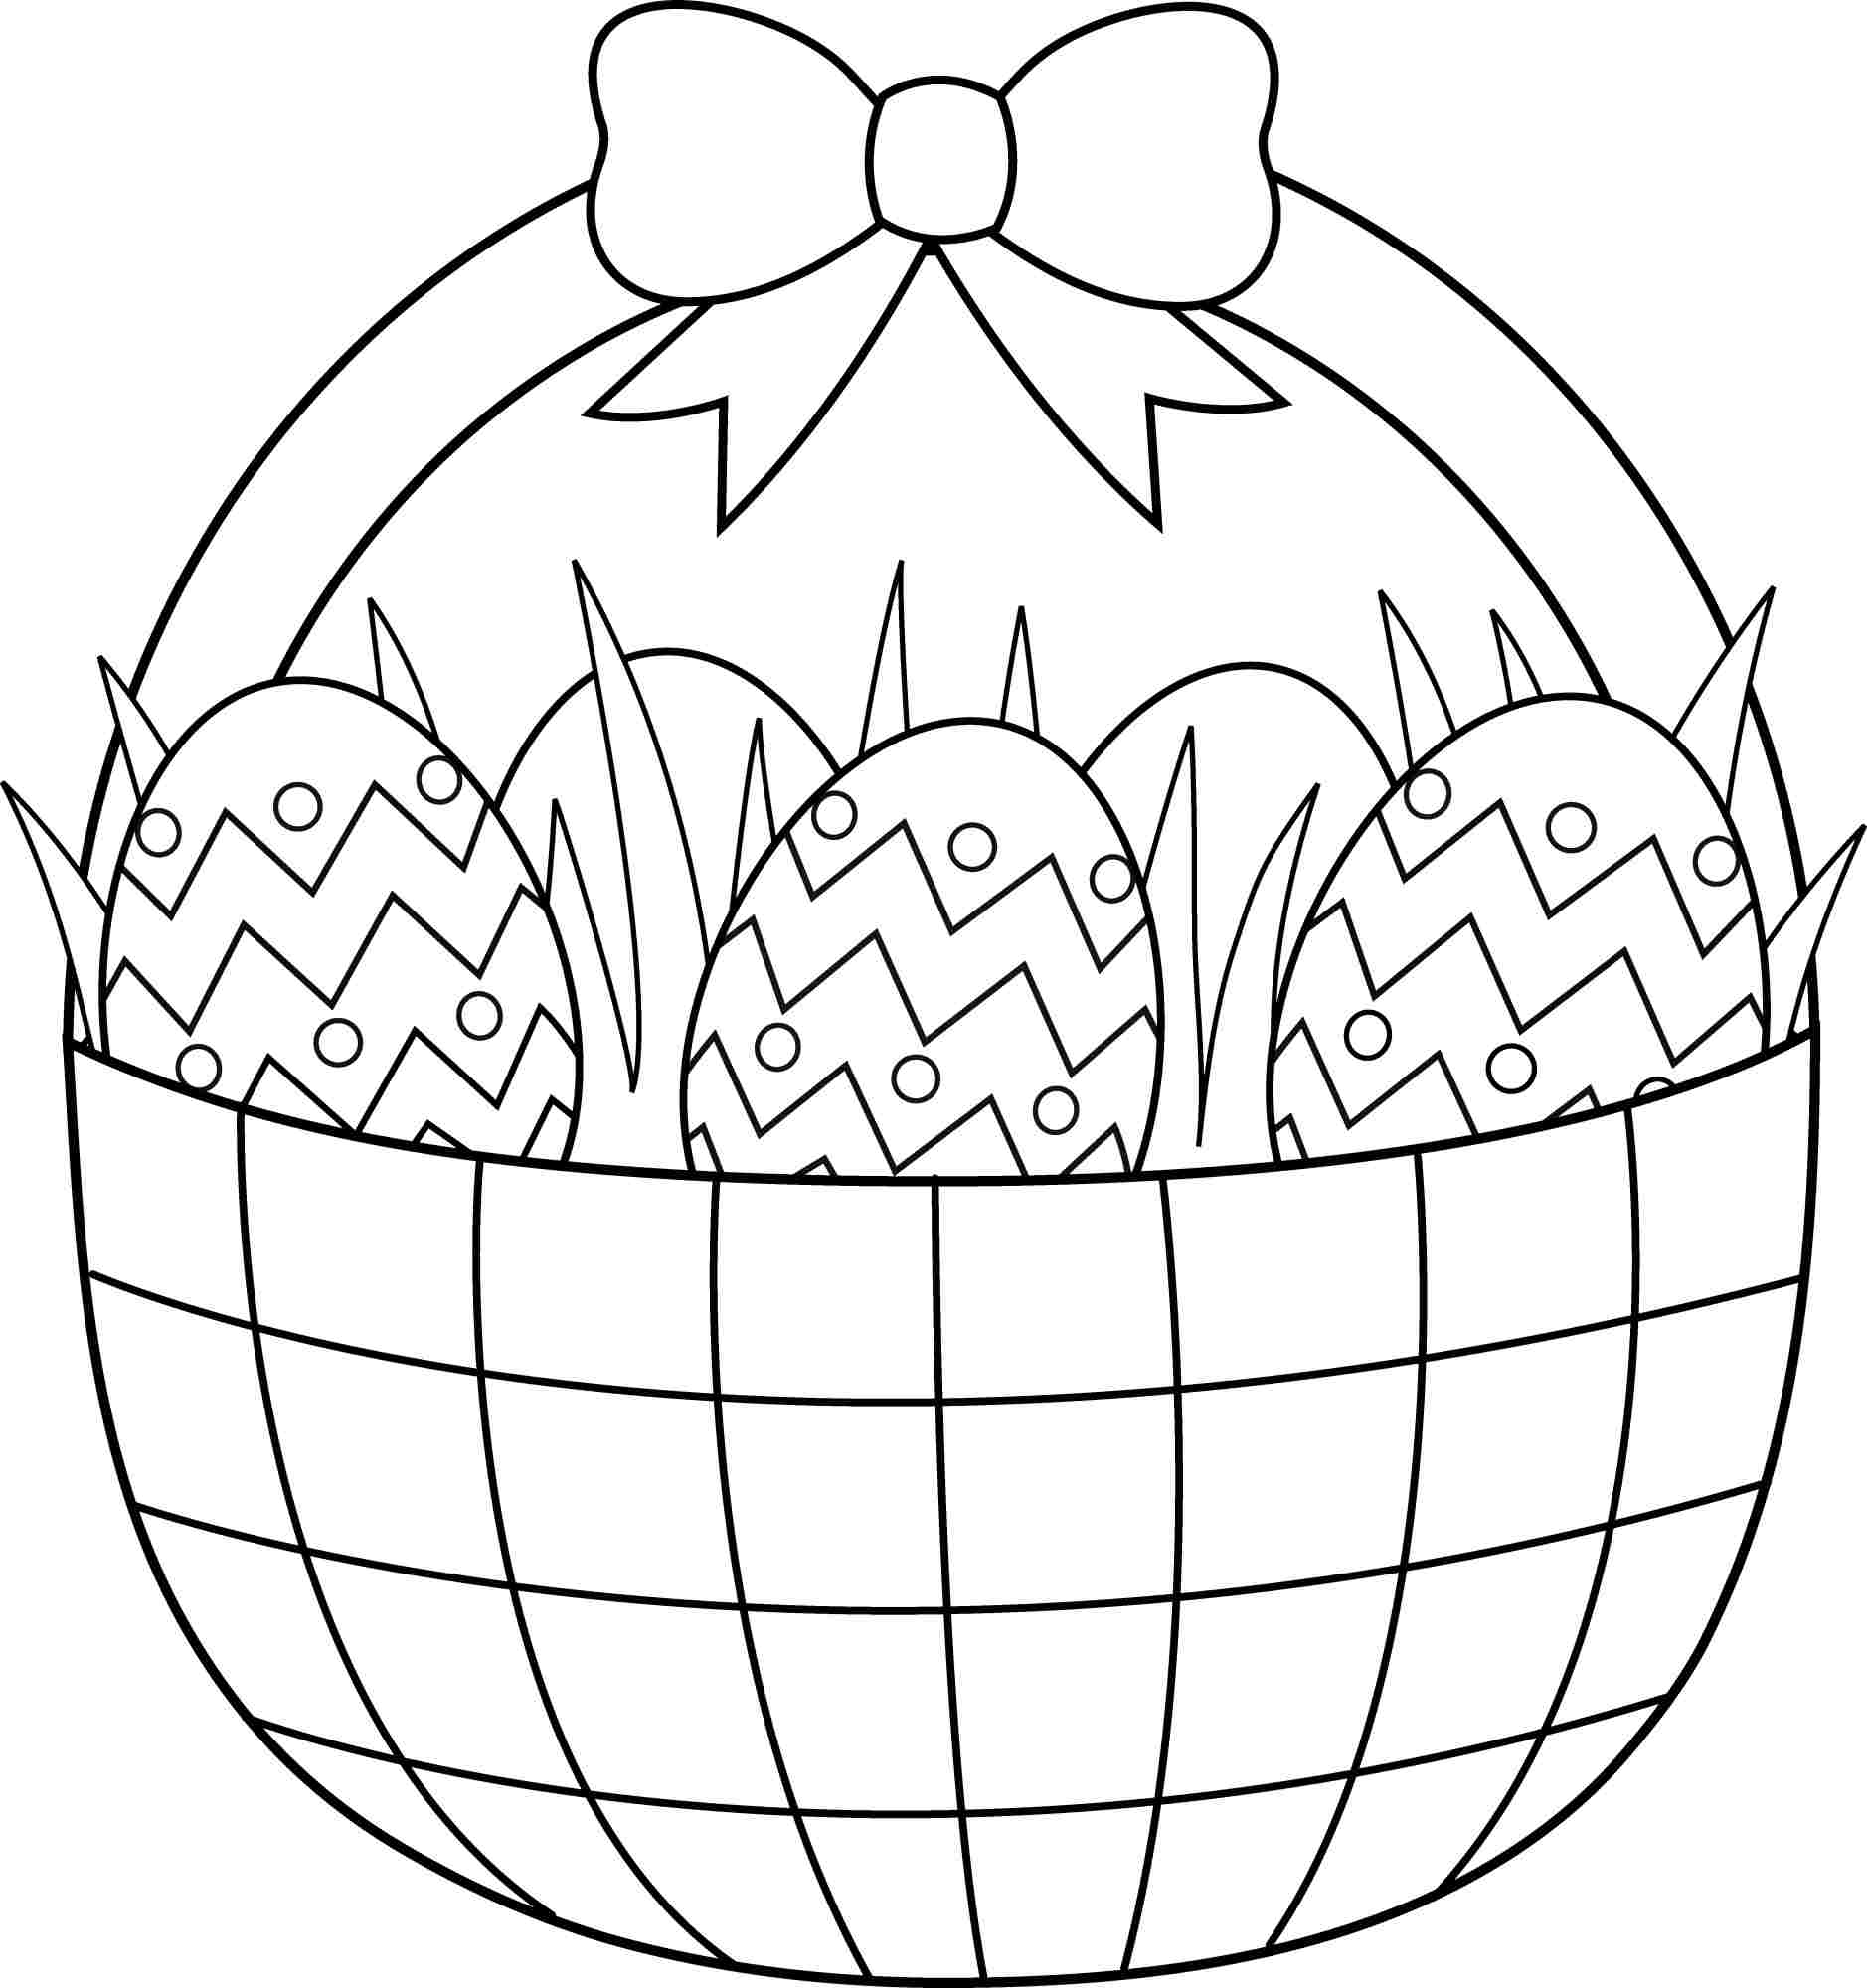 Adult Beauty Easter Coloring Pages For Kids Images beauty free printable christian easter coloring sheets printables color pages for toddlers high quality images